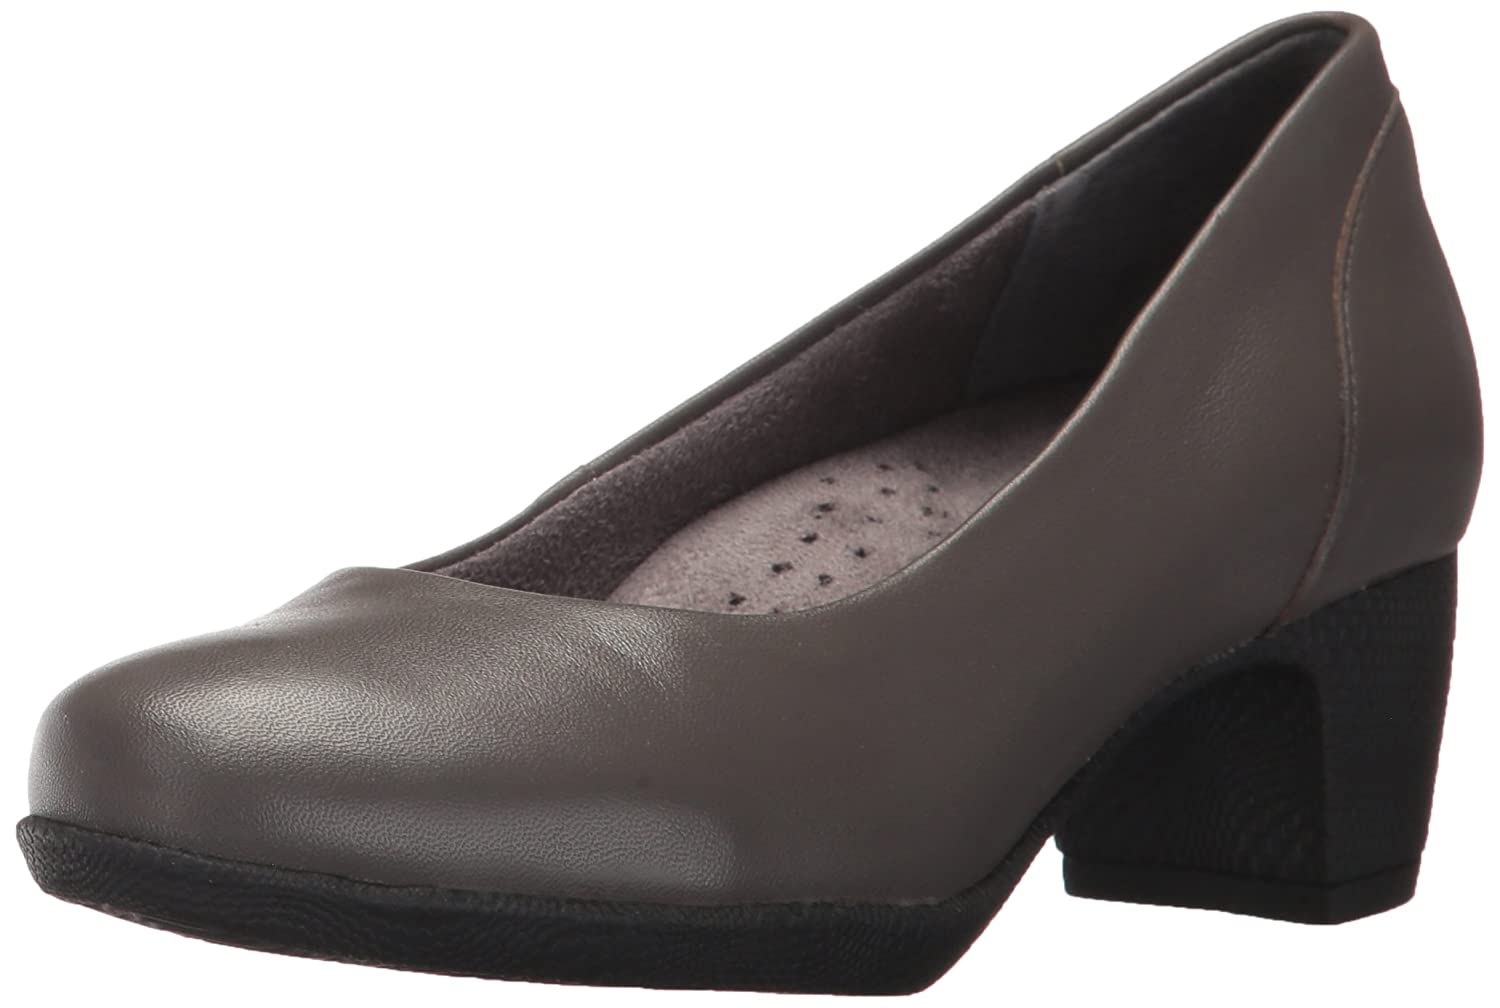 SoftWalk Women's Imperial Ii Dress Pump B01MU31Q1Q 9.5 N US|Dark Grey